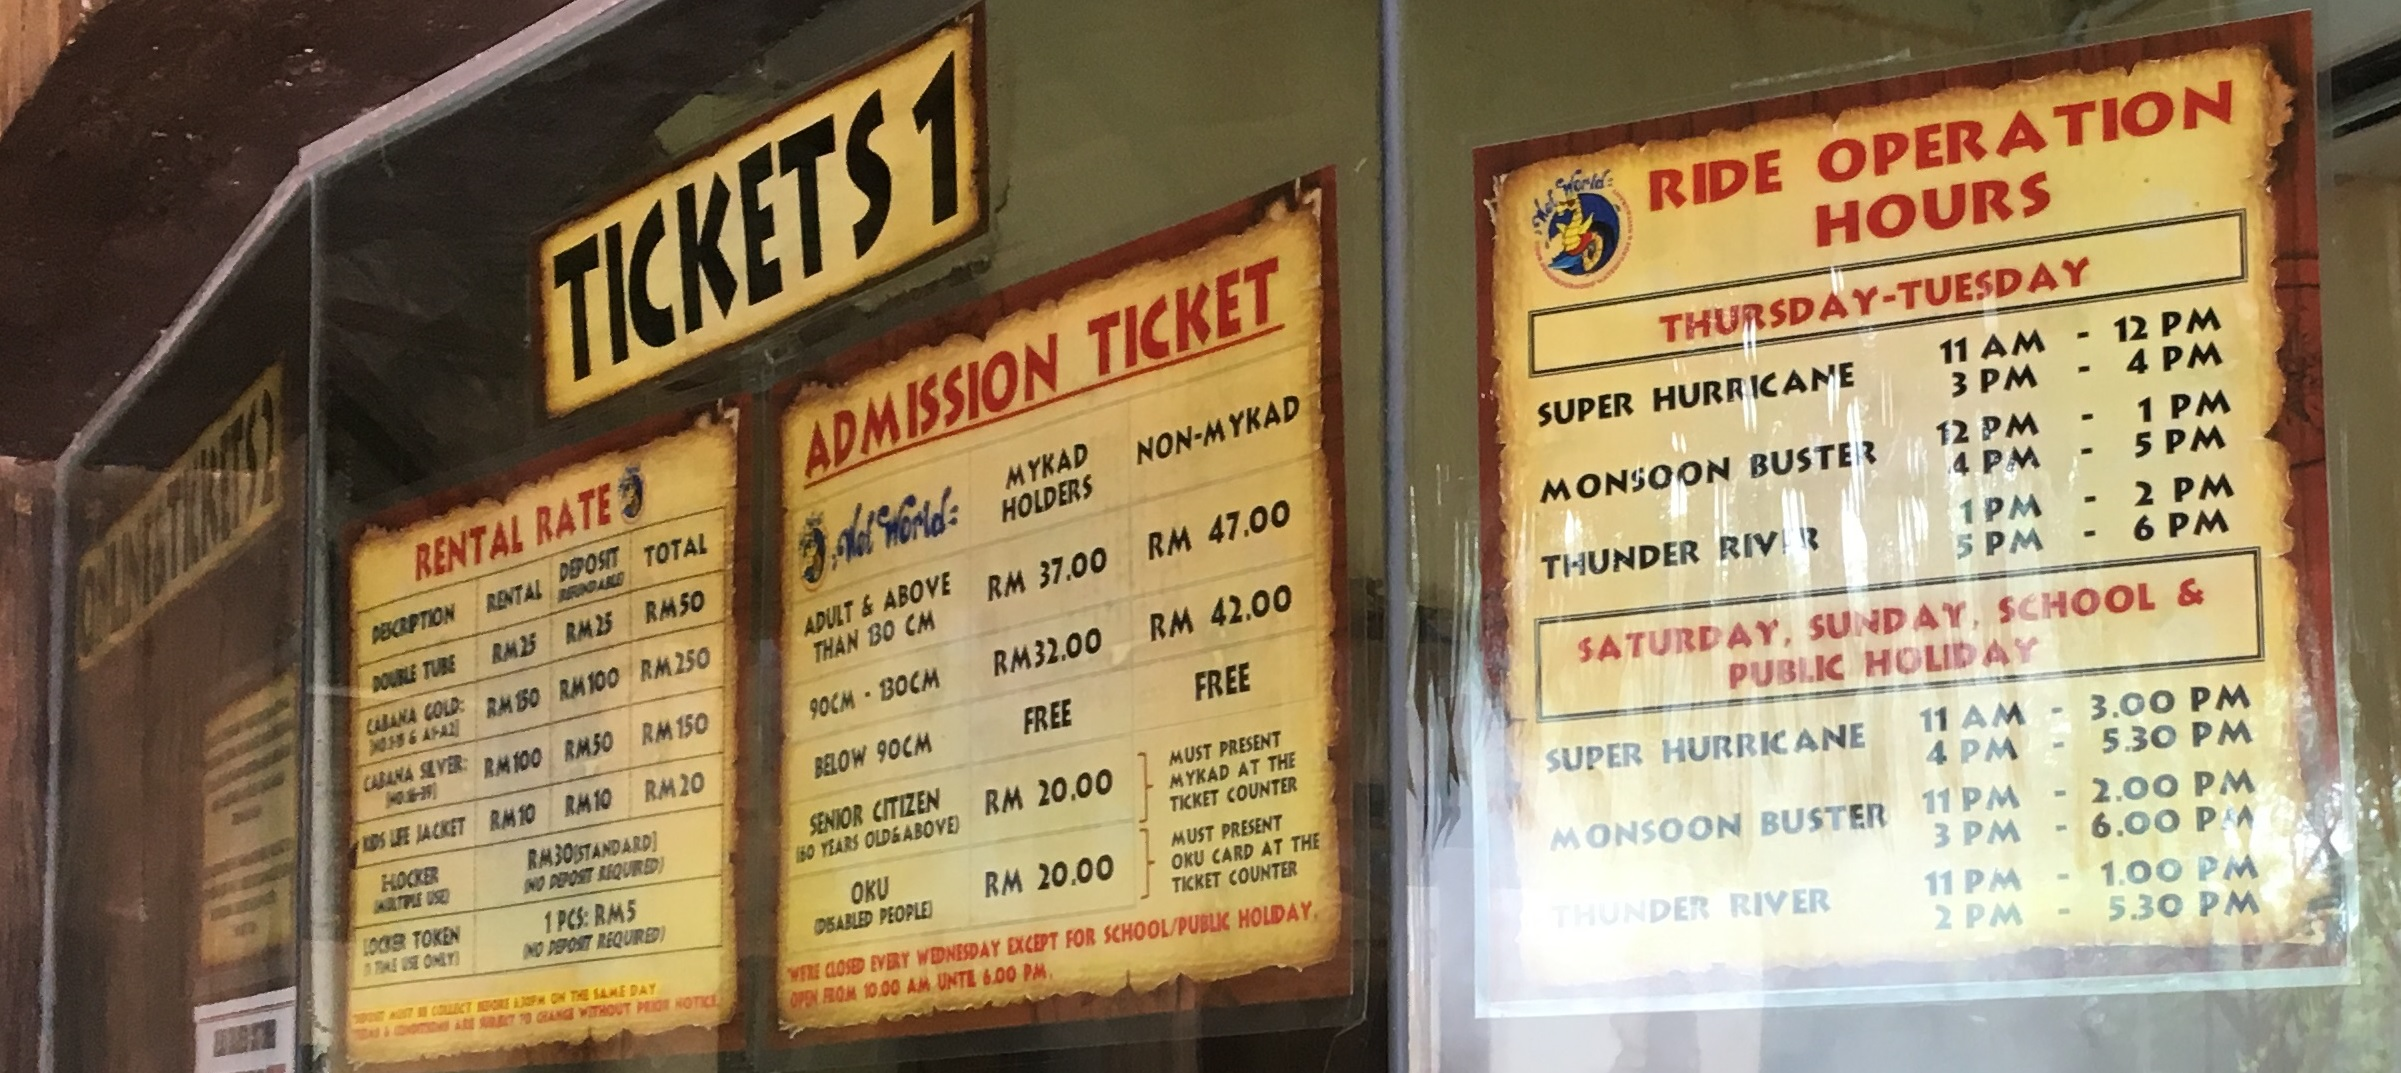 Wet World Ride Operation Hours Rental Rate